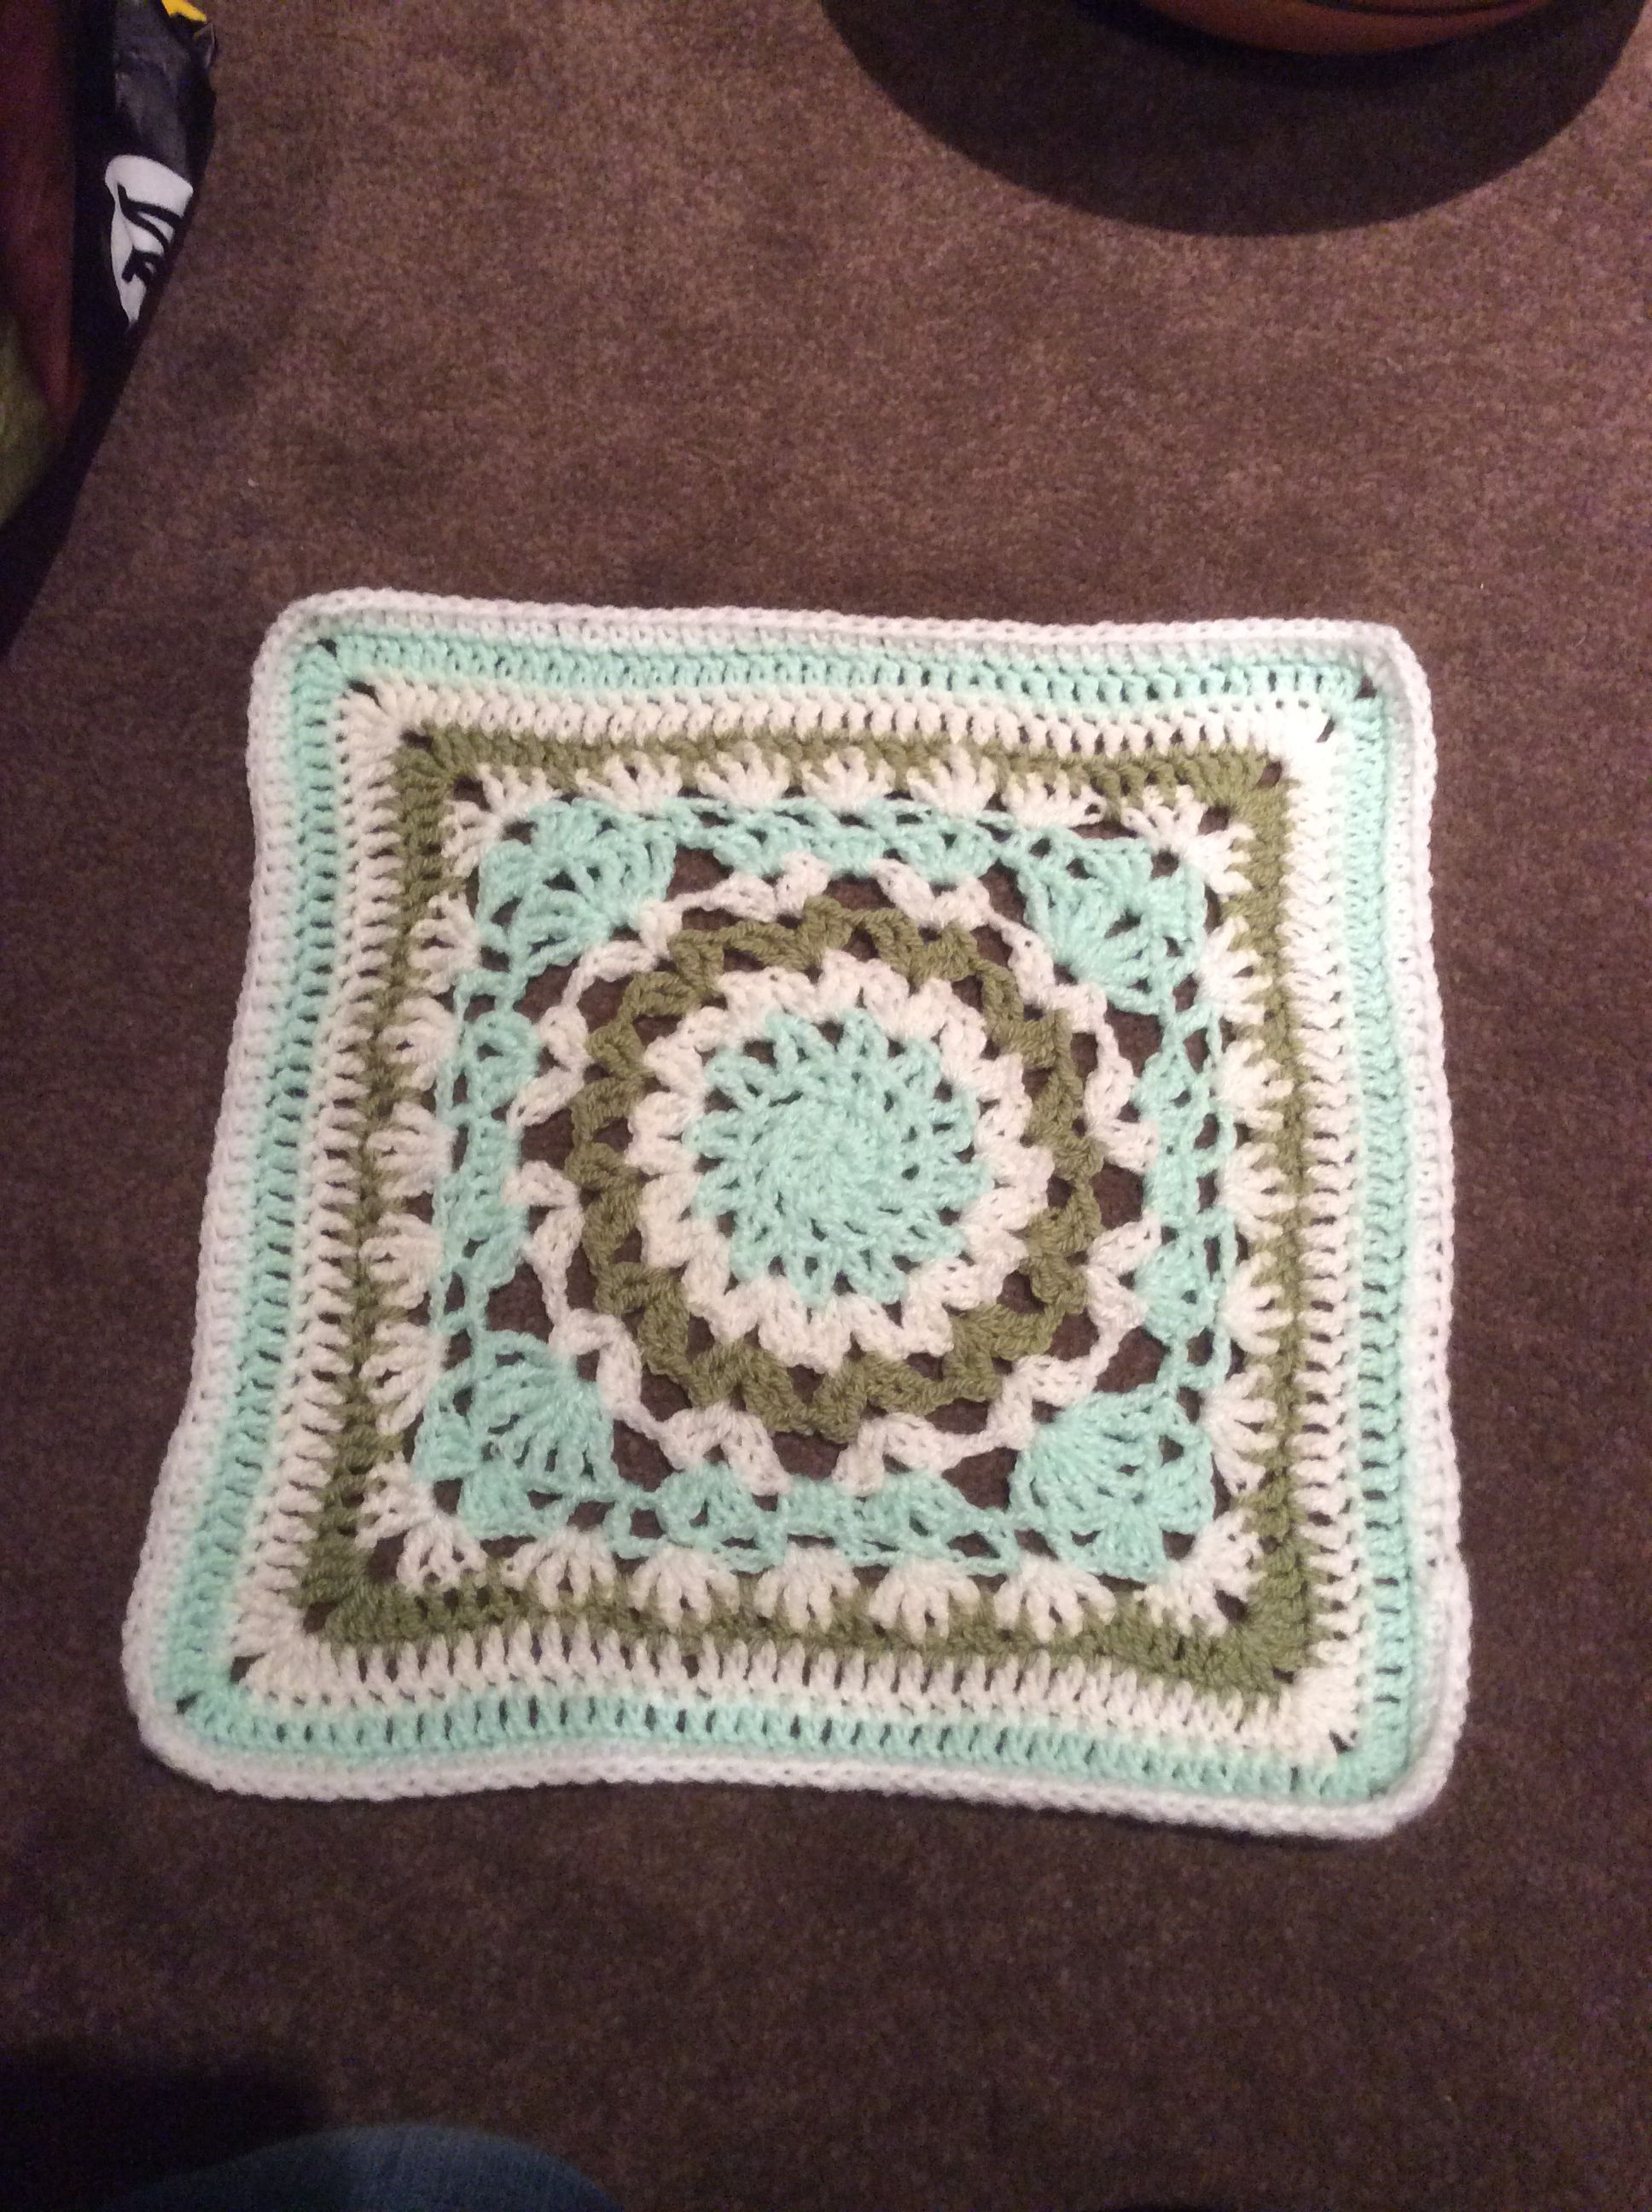 This is Square No. 15. It was interesting to make.